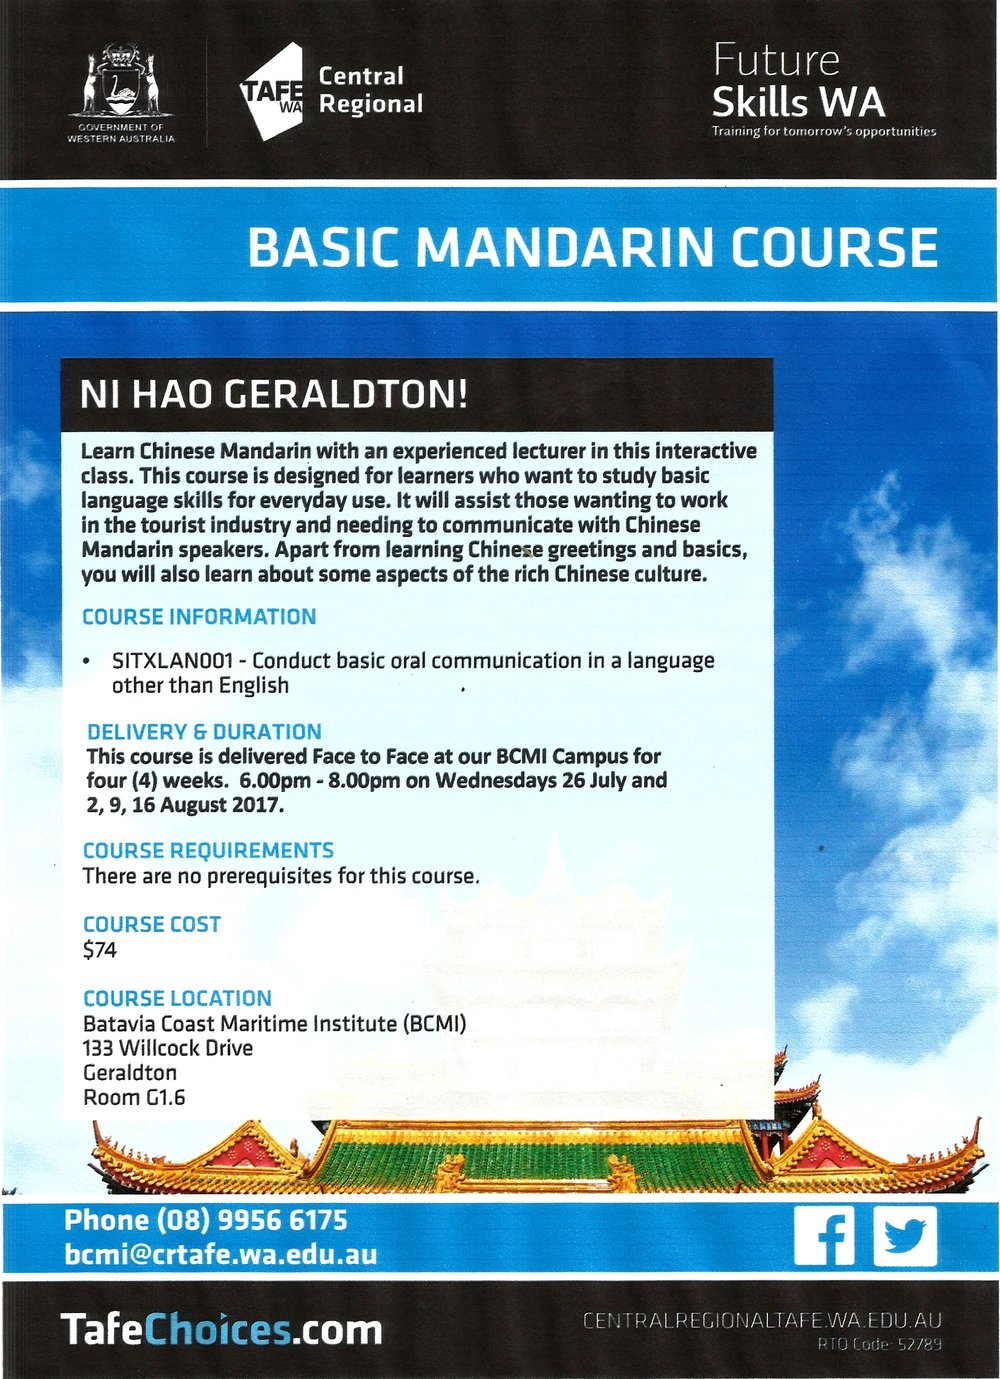 Basic Mandarin Course Everything Geraldton